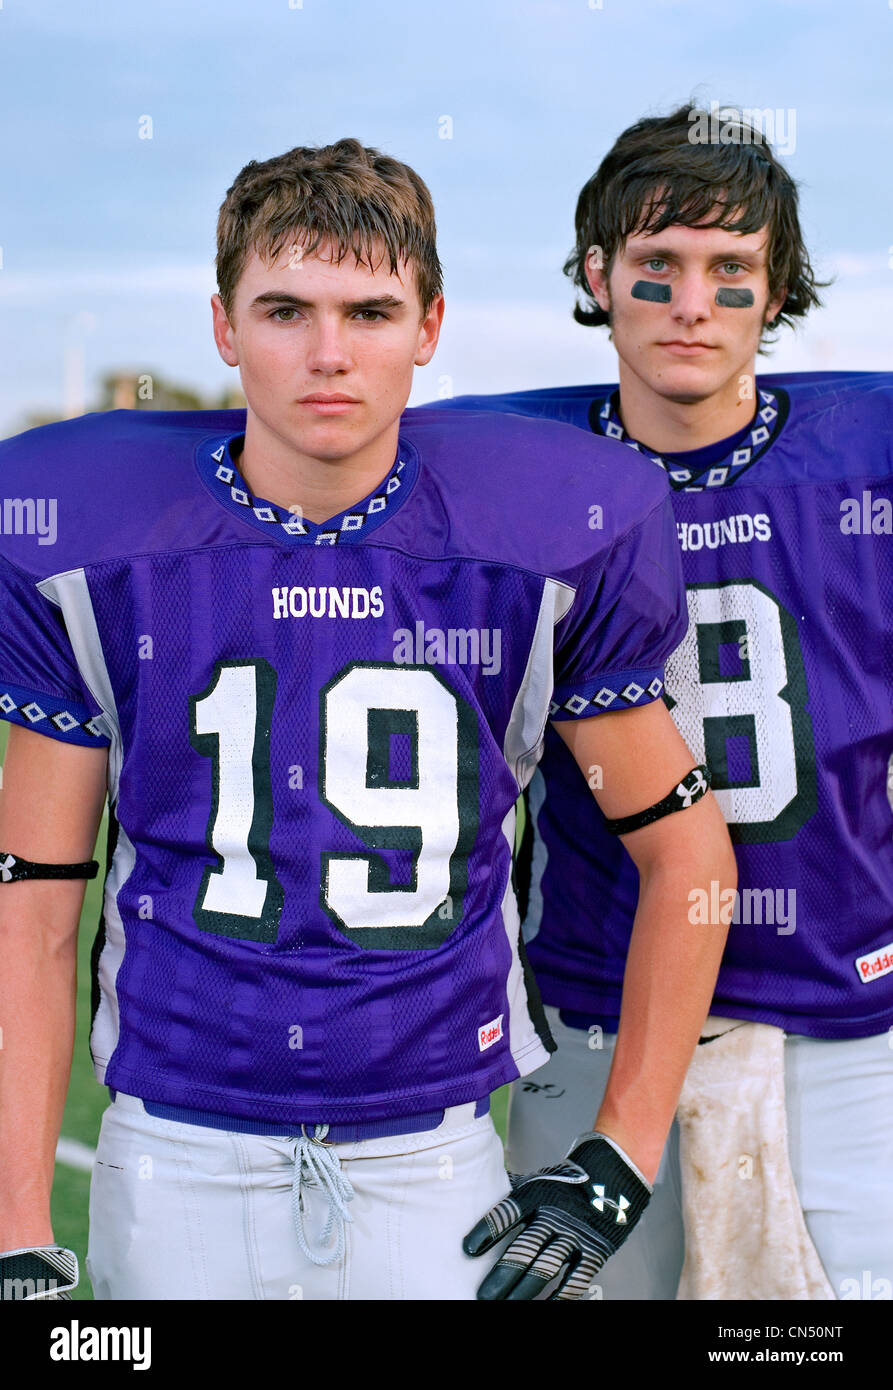 Football players. Boerne, TX. - Stock Image